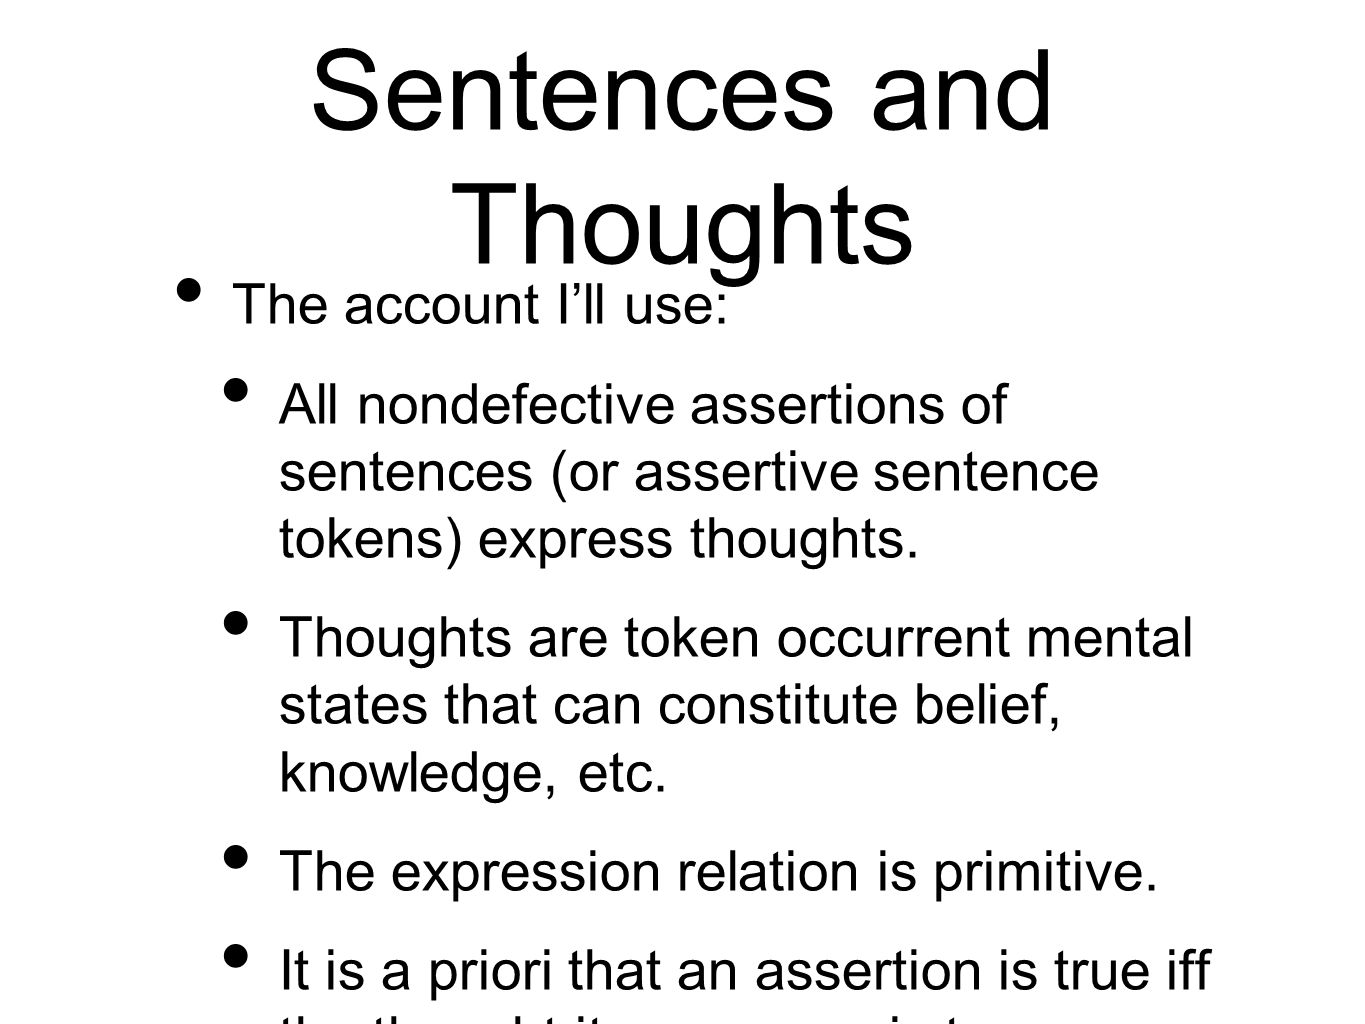 Sentences and Thoughts The account Ill use: All nondefective assertions of sentences (or assertive sentence tokens) express thoughts.